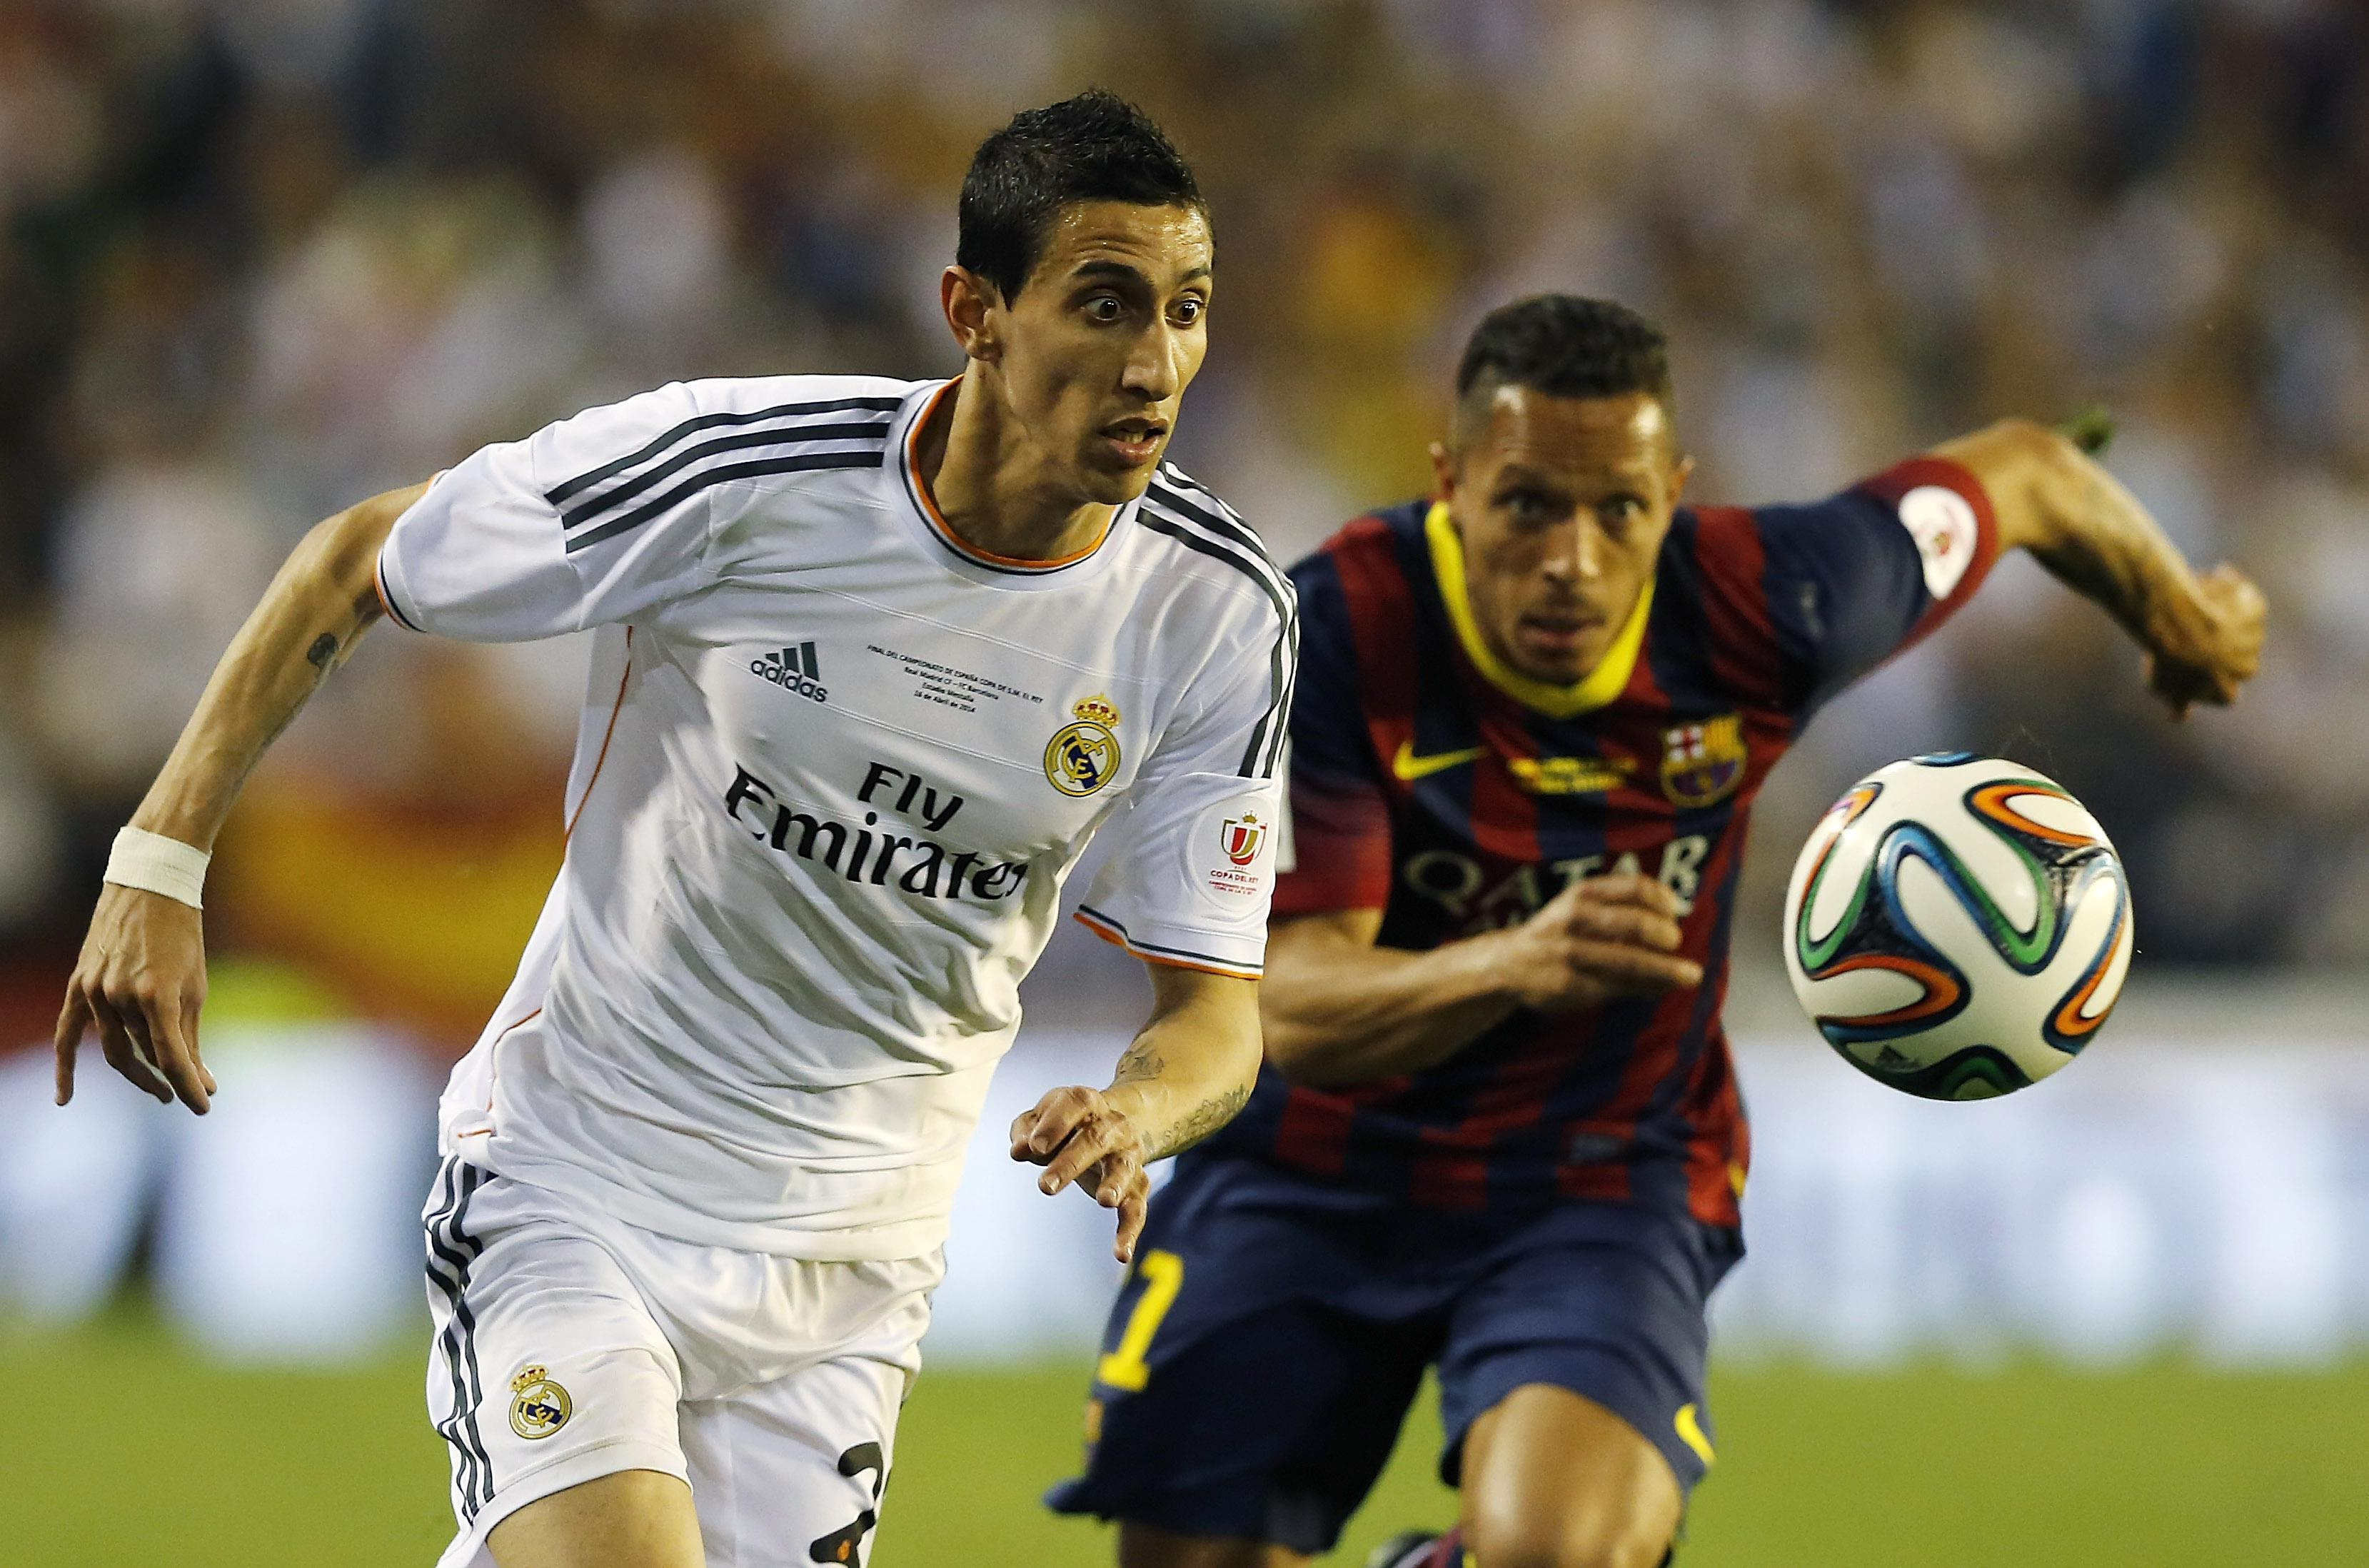 Di Maria was the man of the match in the 2014 Champions League final for Real